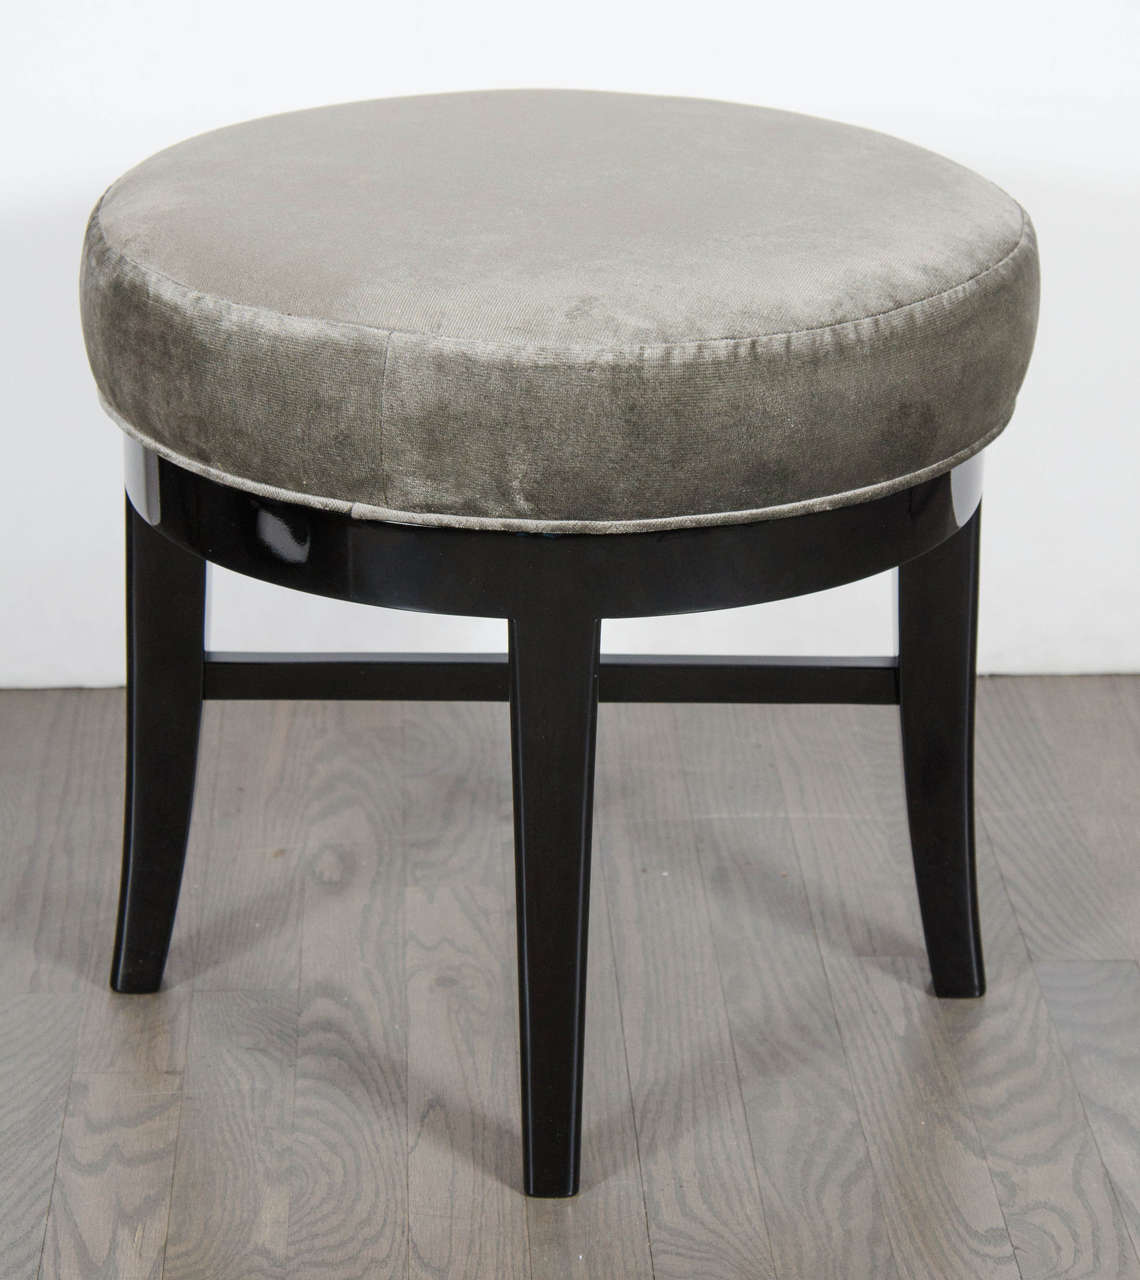 swivel vanity chair cheap wobble chiropractic mid century modernist round stool with x